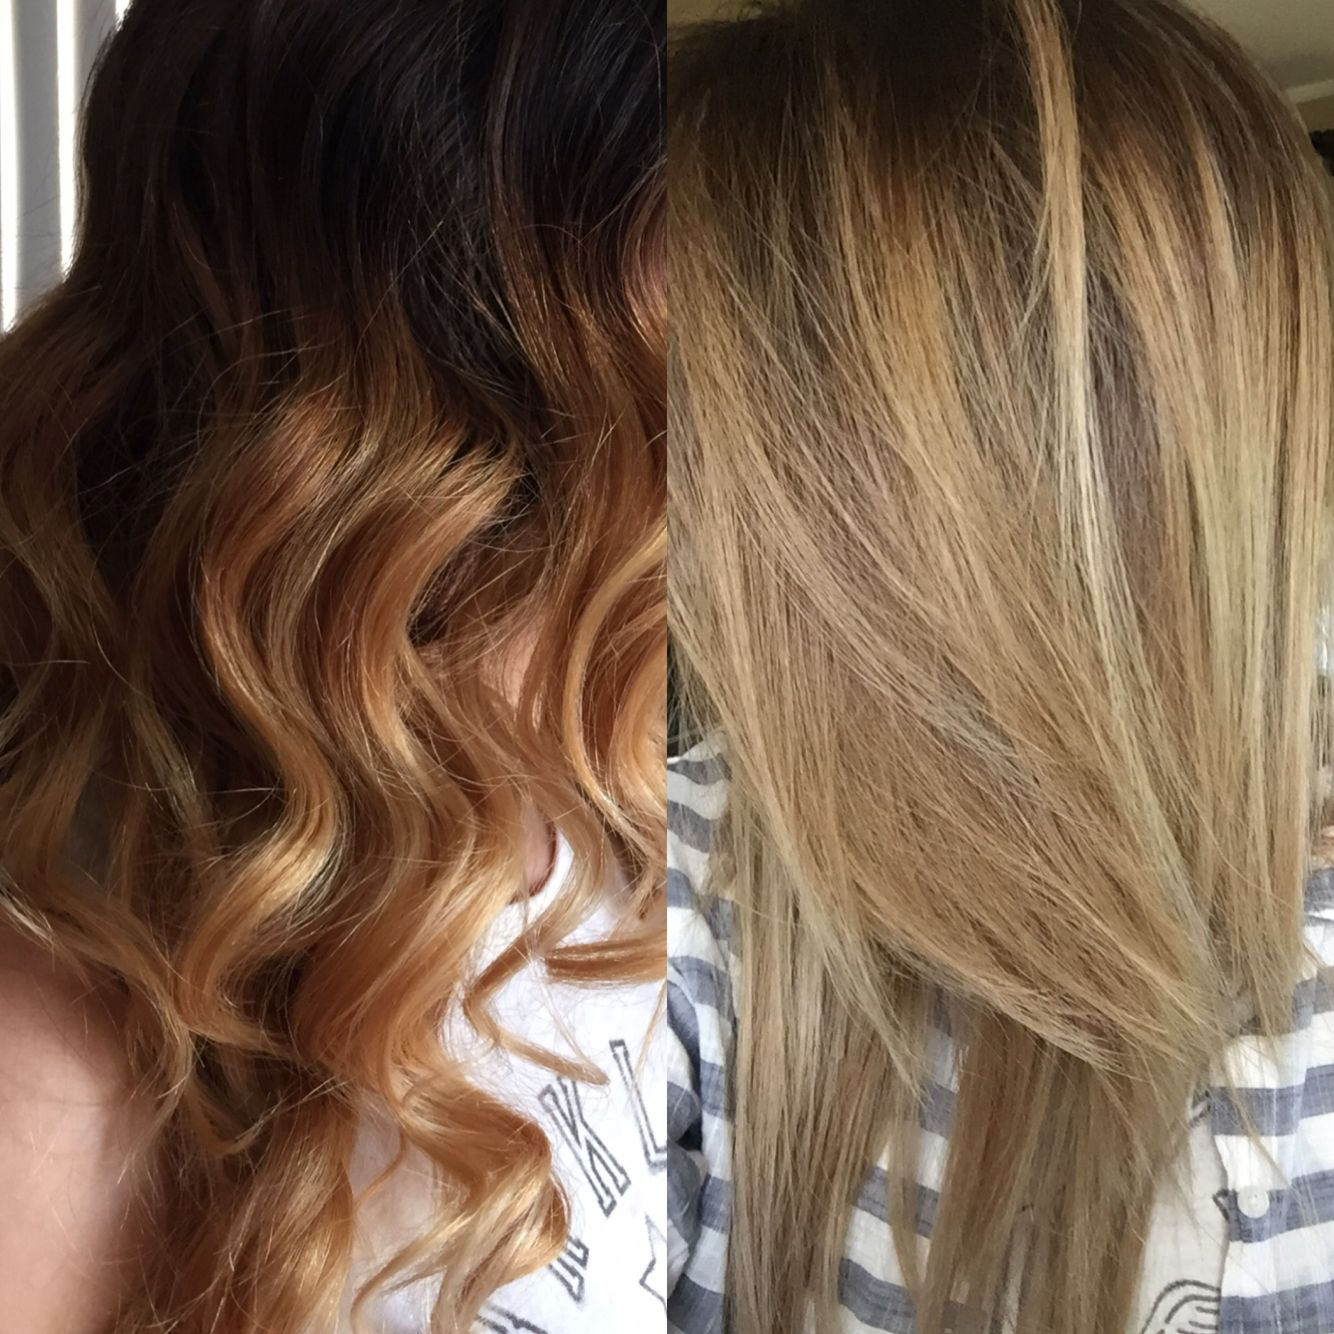 Wella T18 Toner Helped Me Get Did Of The Brazzy Color In My Hair I Love It Toner For Blonde Hair Short Brunette Hair Bob Hairstyles For Thick